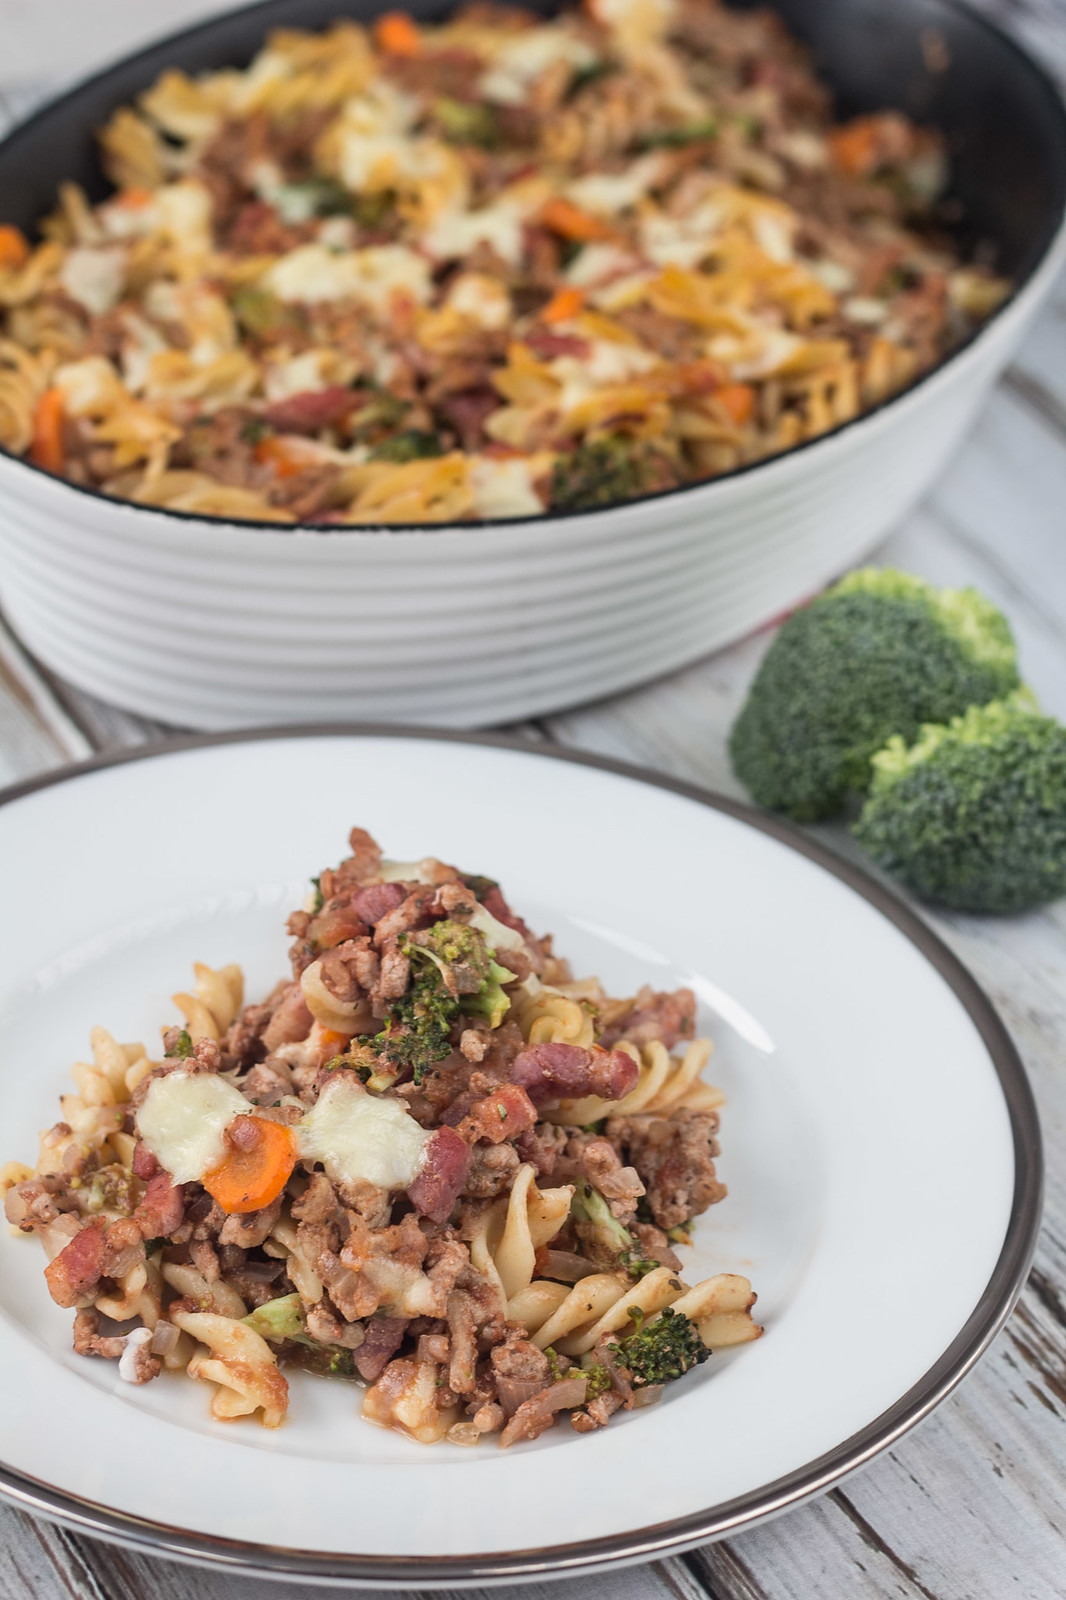 Recipe for a healthy Pork and Bacon Pasta dish